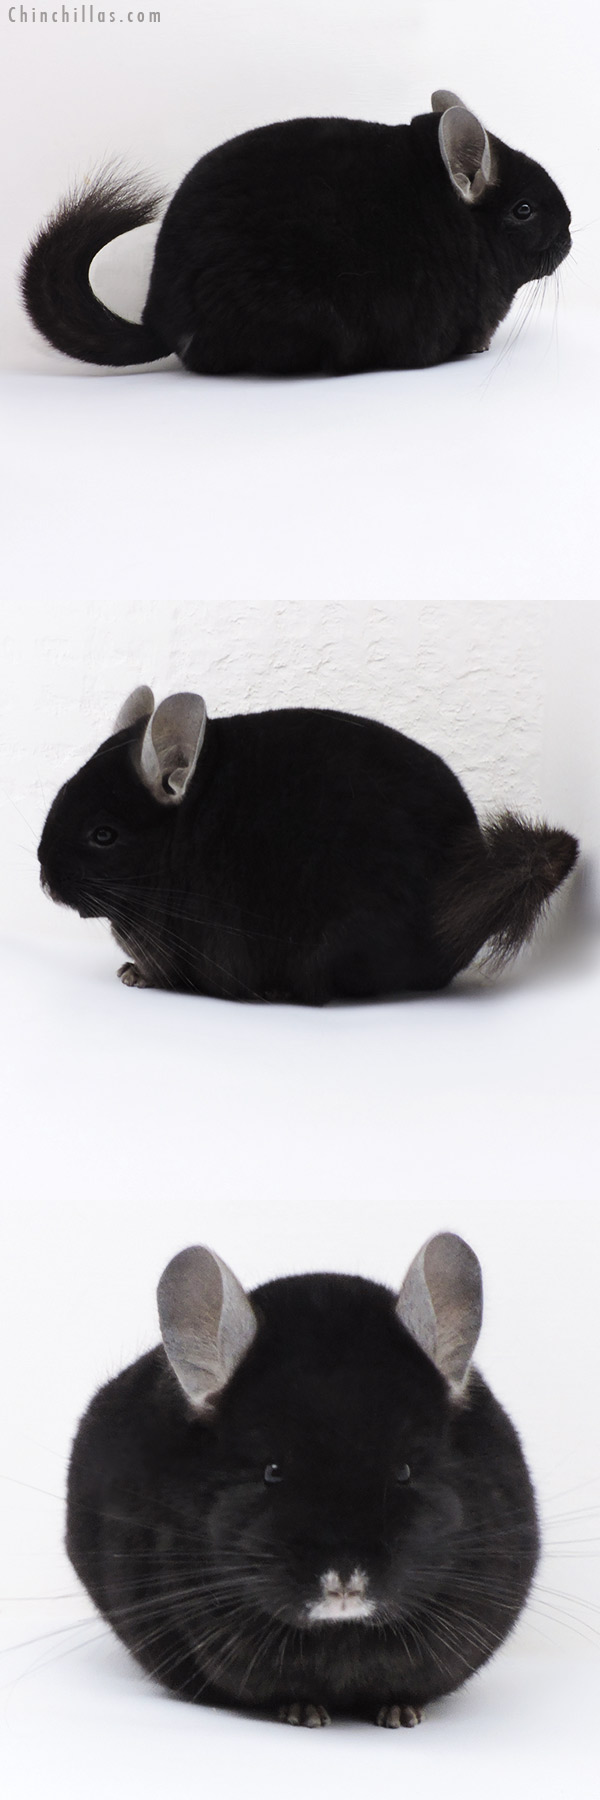 17411 Blocky Premium Production Quality Ebony Female Chinchilla